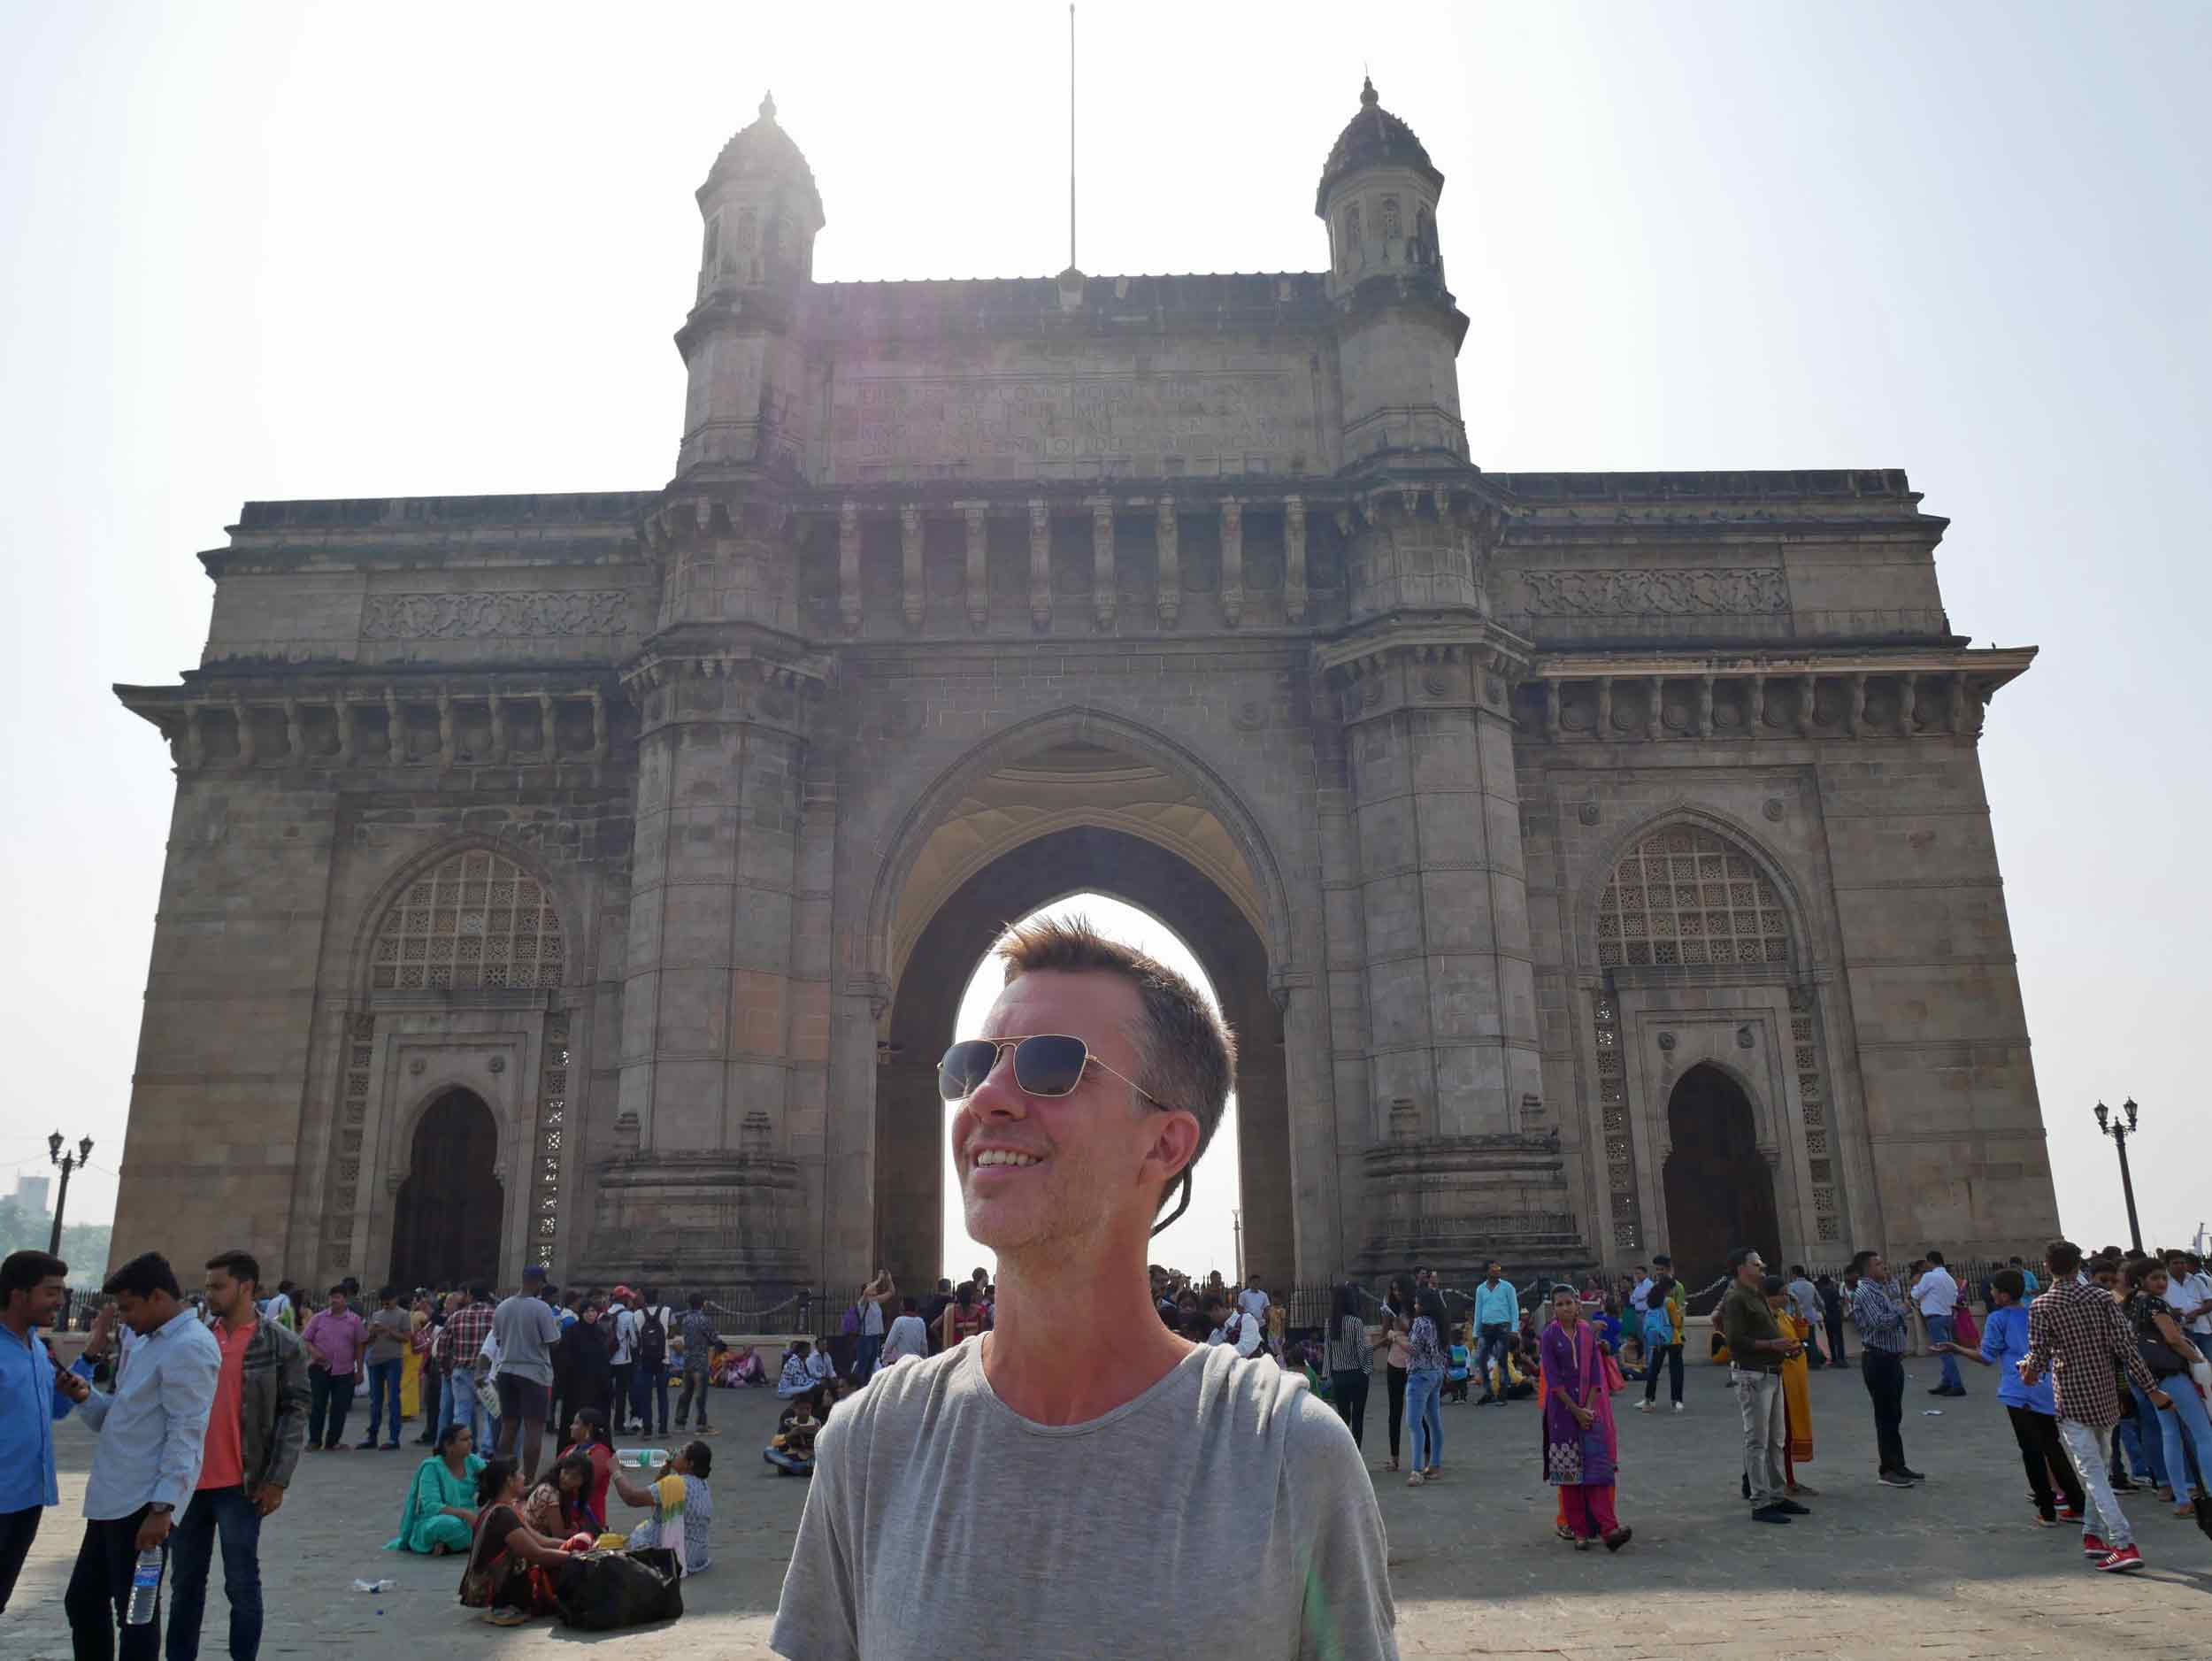 Magnificent India Gate, where many Indian tourists requested to get selfies with us, giving us a glimpse of famous life.